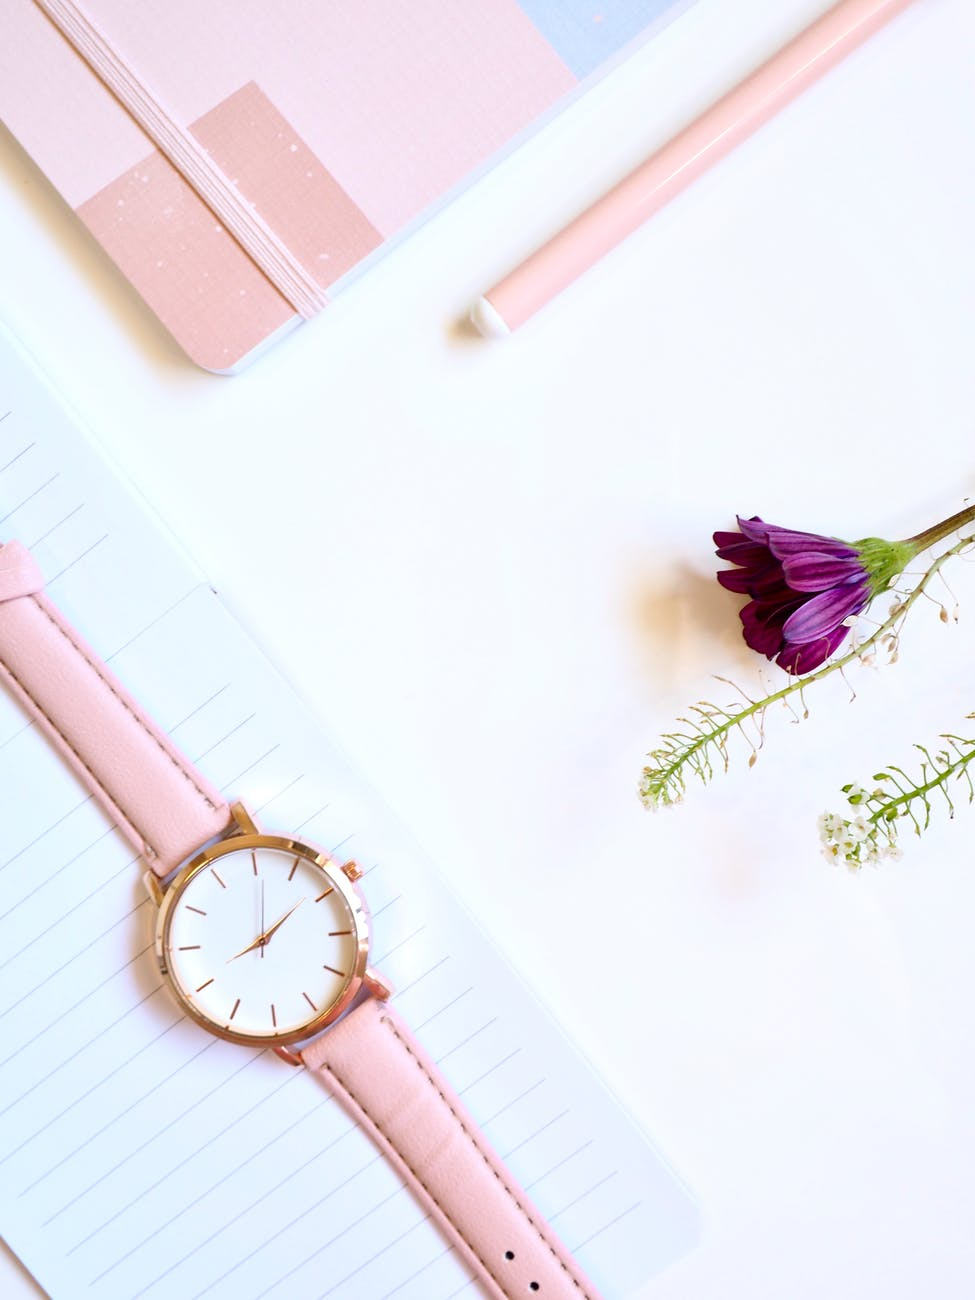 analog watch composition feminine flower